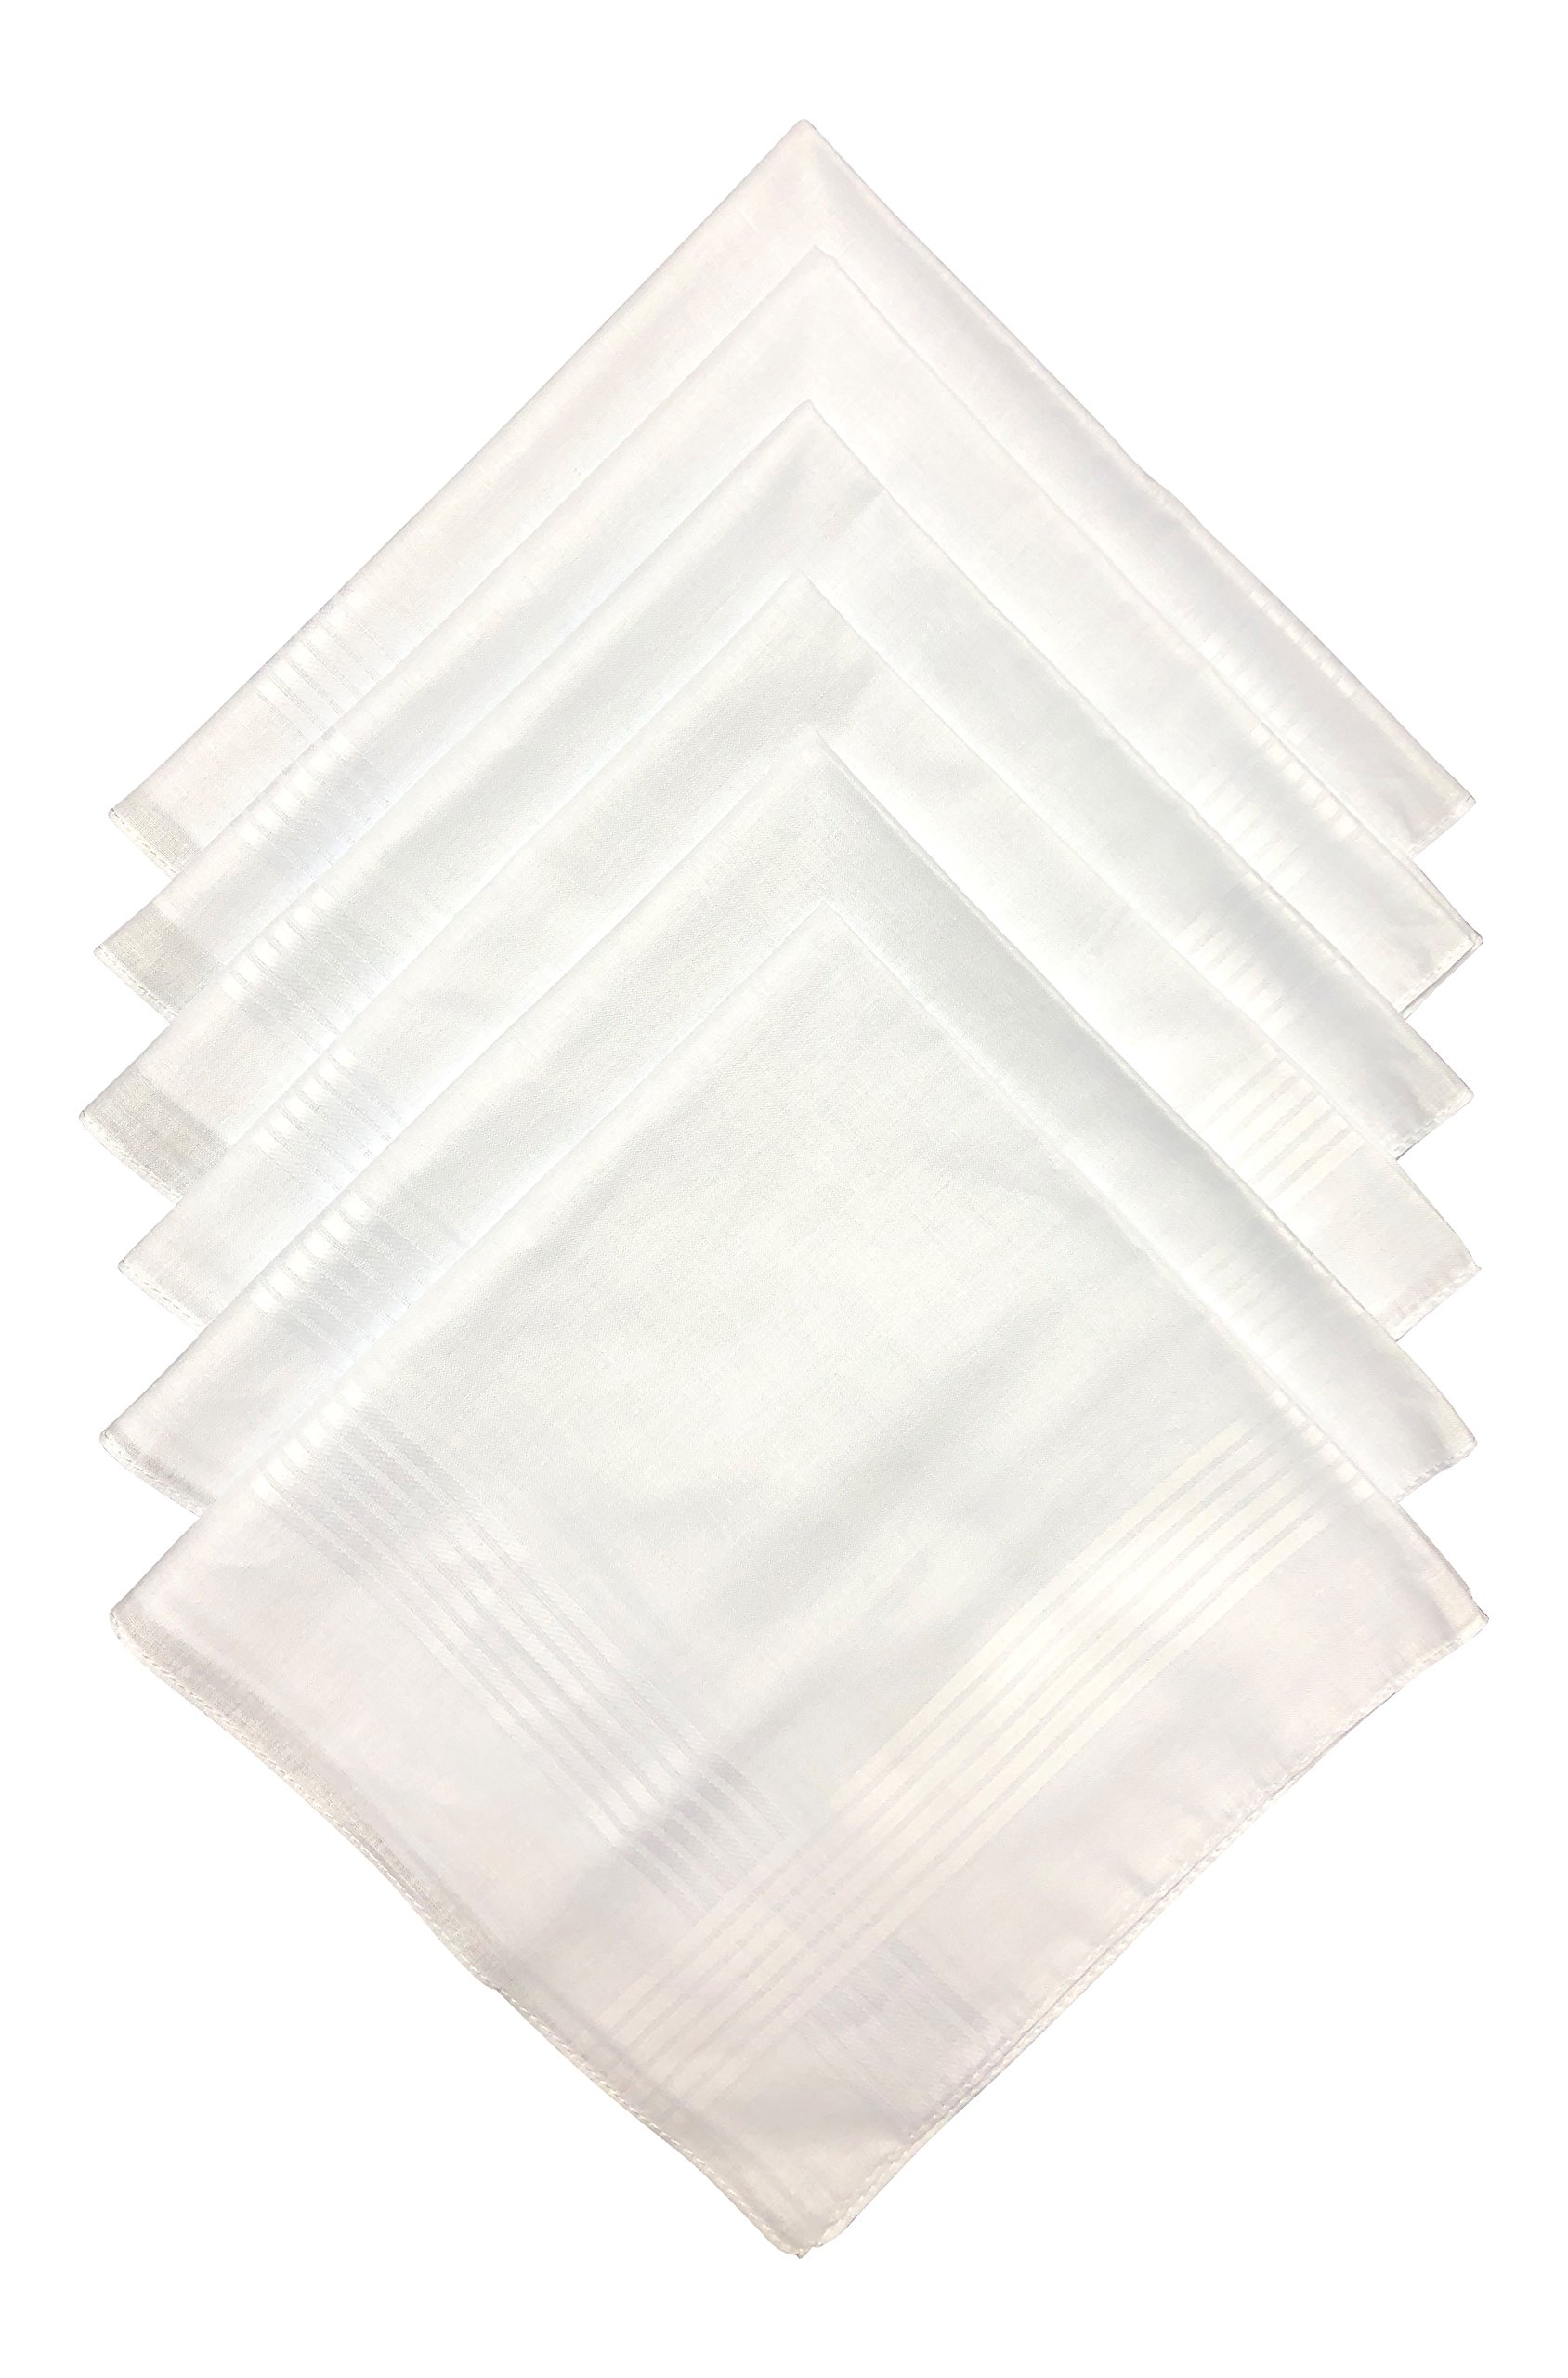 Q.T. Bamboo Men's Soft Bamboo Classic White Handkerchief (6 Pack, White)